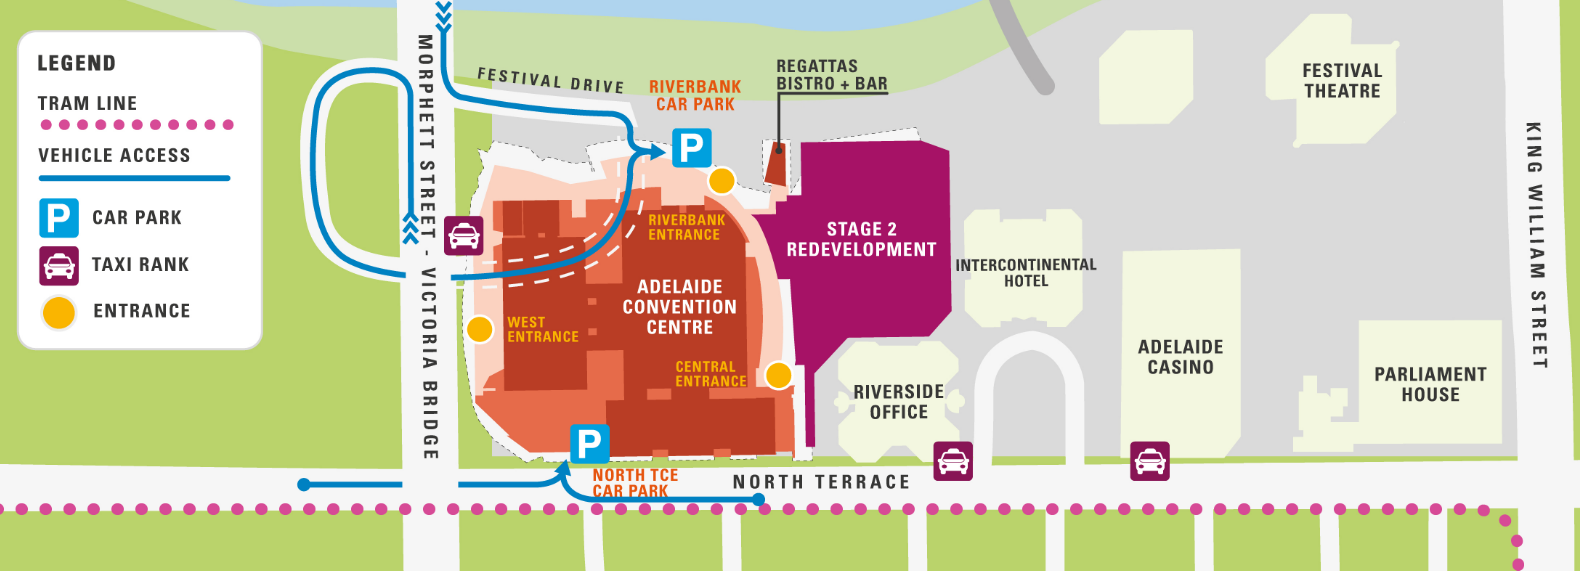 ACC Riverbank and Car Parking Map